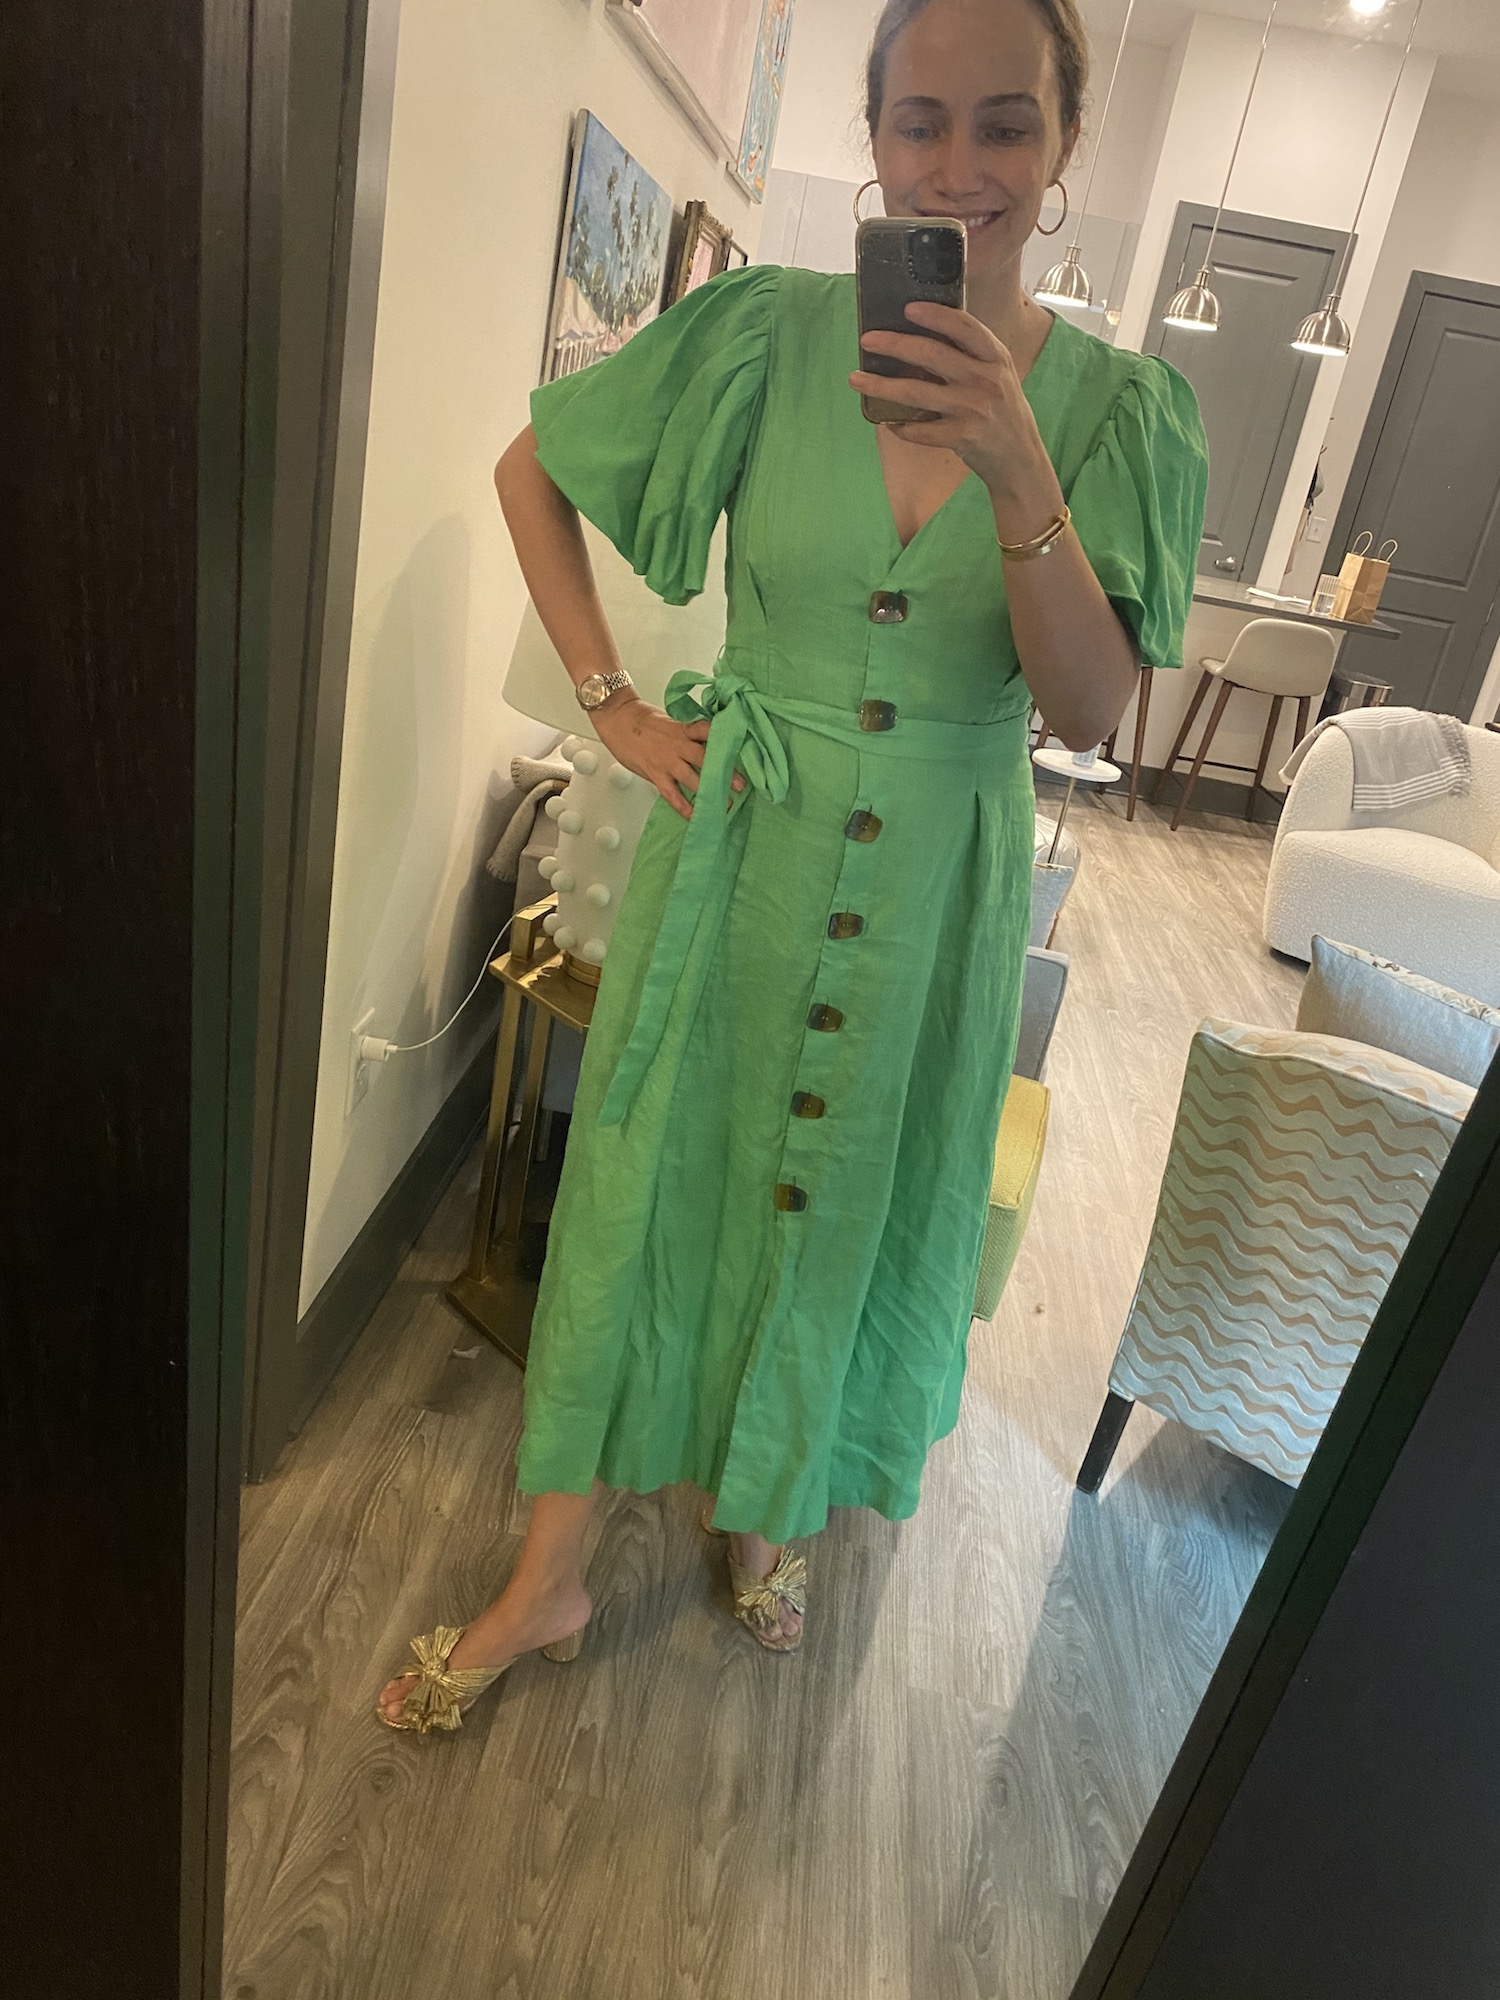 Nicholas dress from Rent the Runway | A Week of Outfits 5.19.21